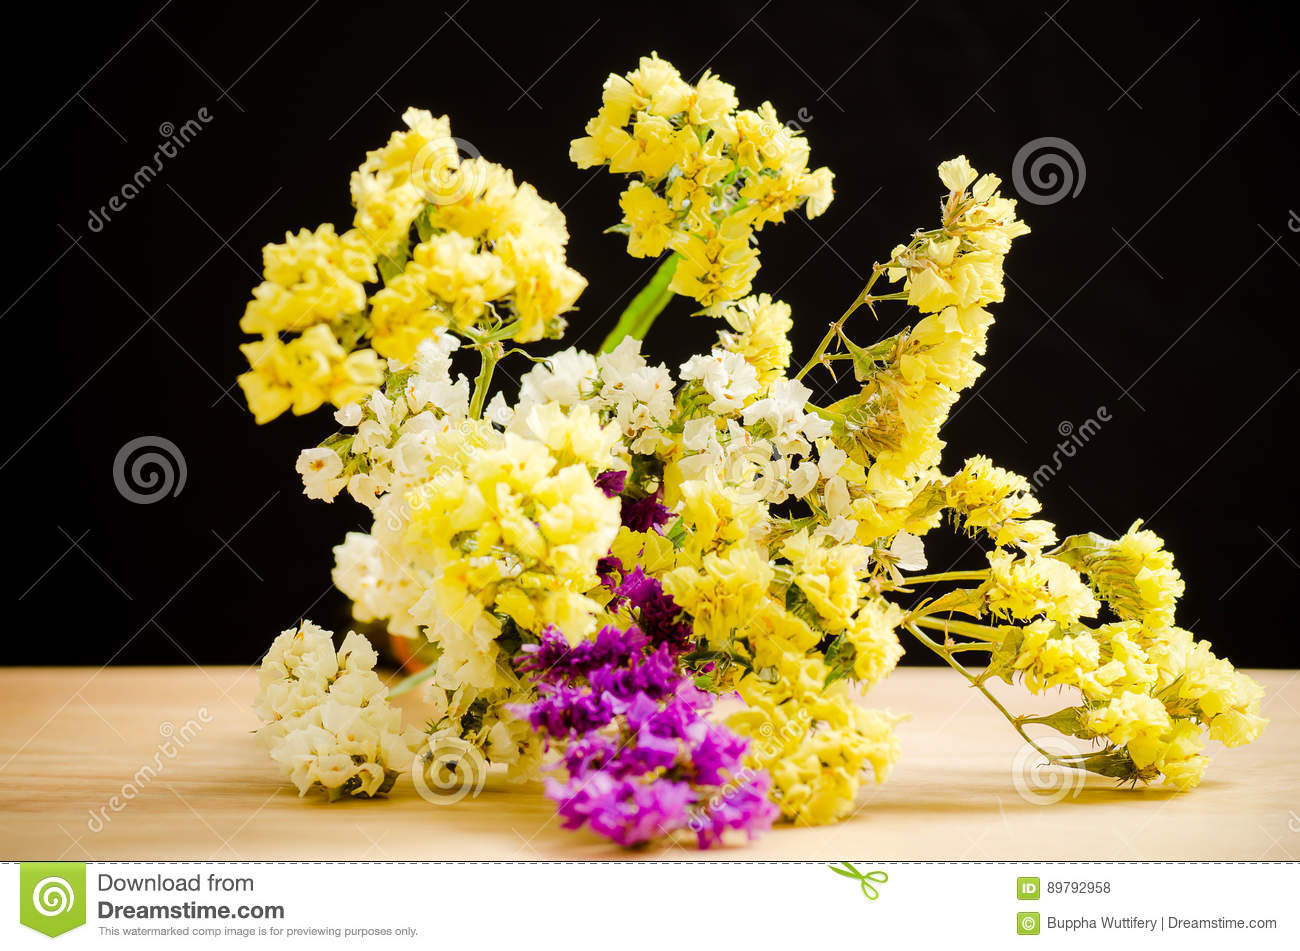 Yellow statice flowers stock photo image of decoration 89792958 download comp mightylinksfo